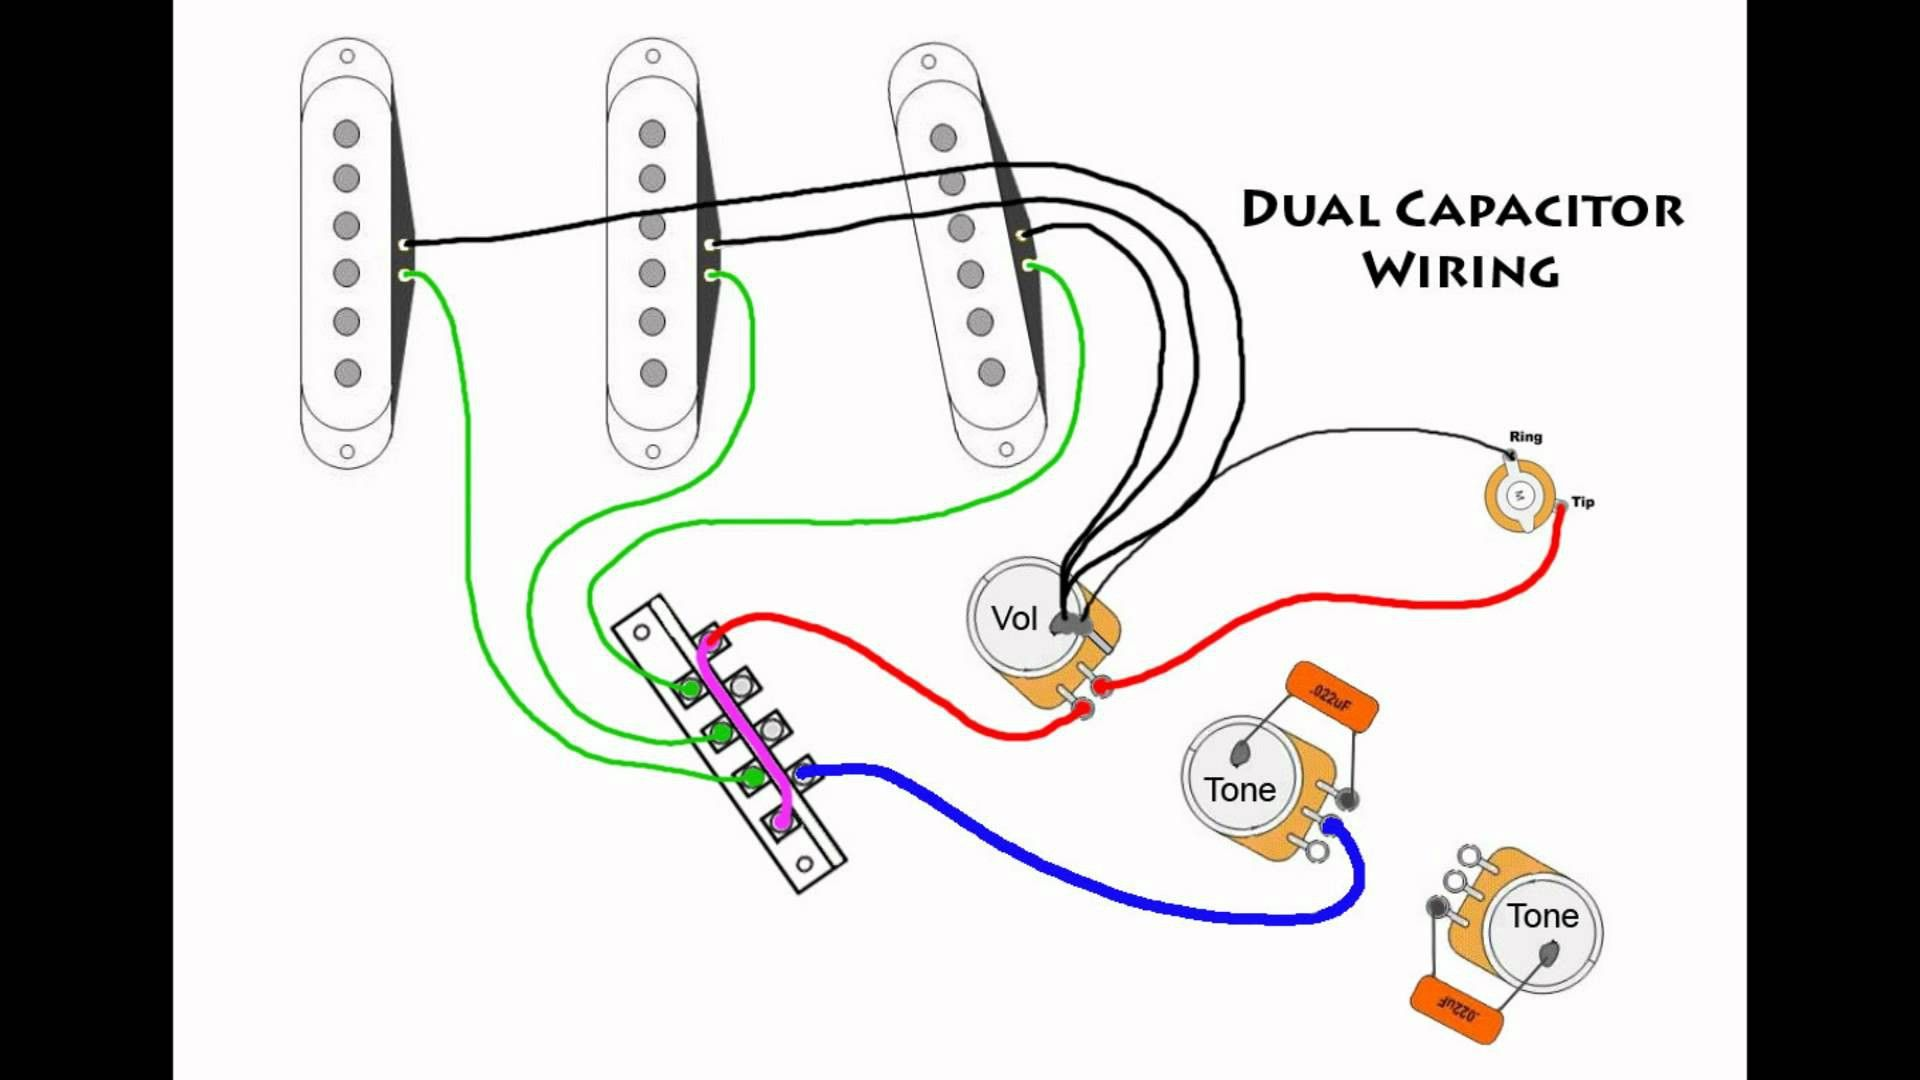 hight resolution of fender stratocaster wiring diagram best of strat throughout diagrams wiring diagram fender telecaster 3 way switch wiring diagram fender